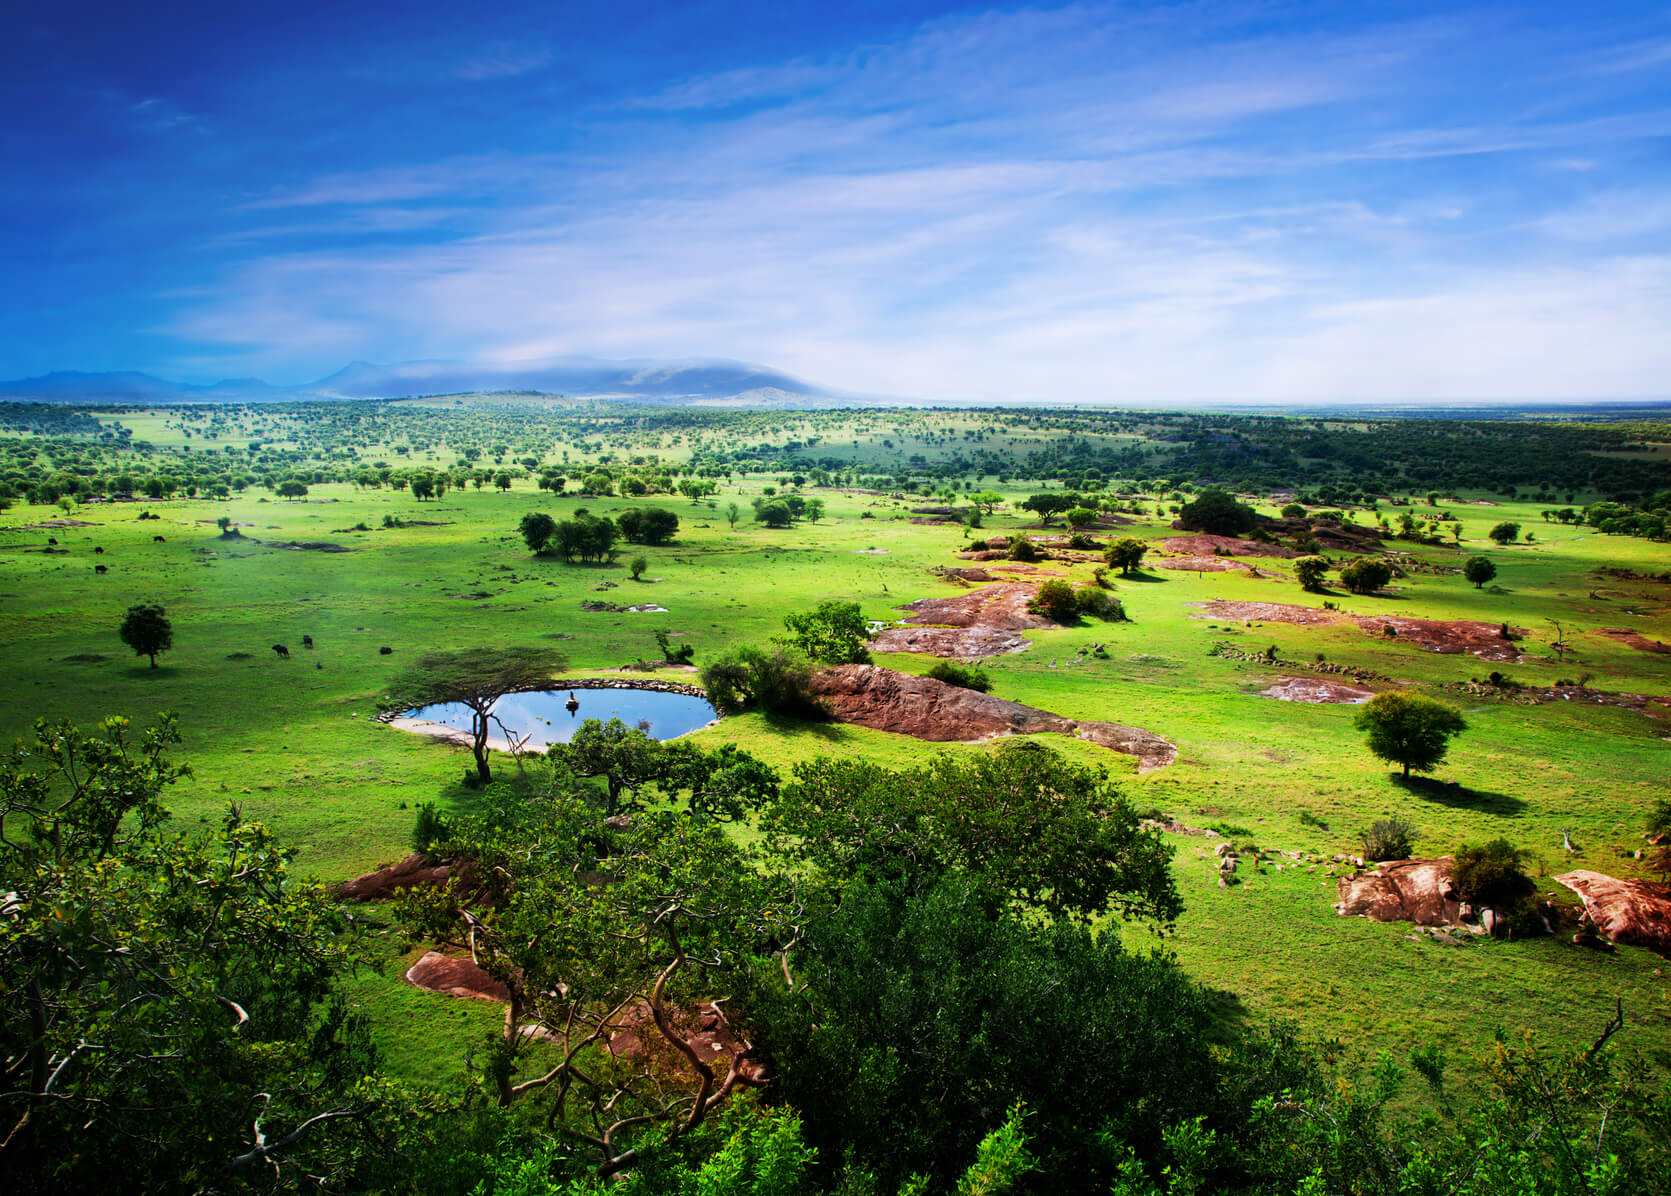 Vancouver, Canada to Tanzania for only $968 CAD roundtrip